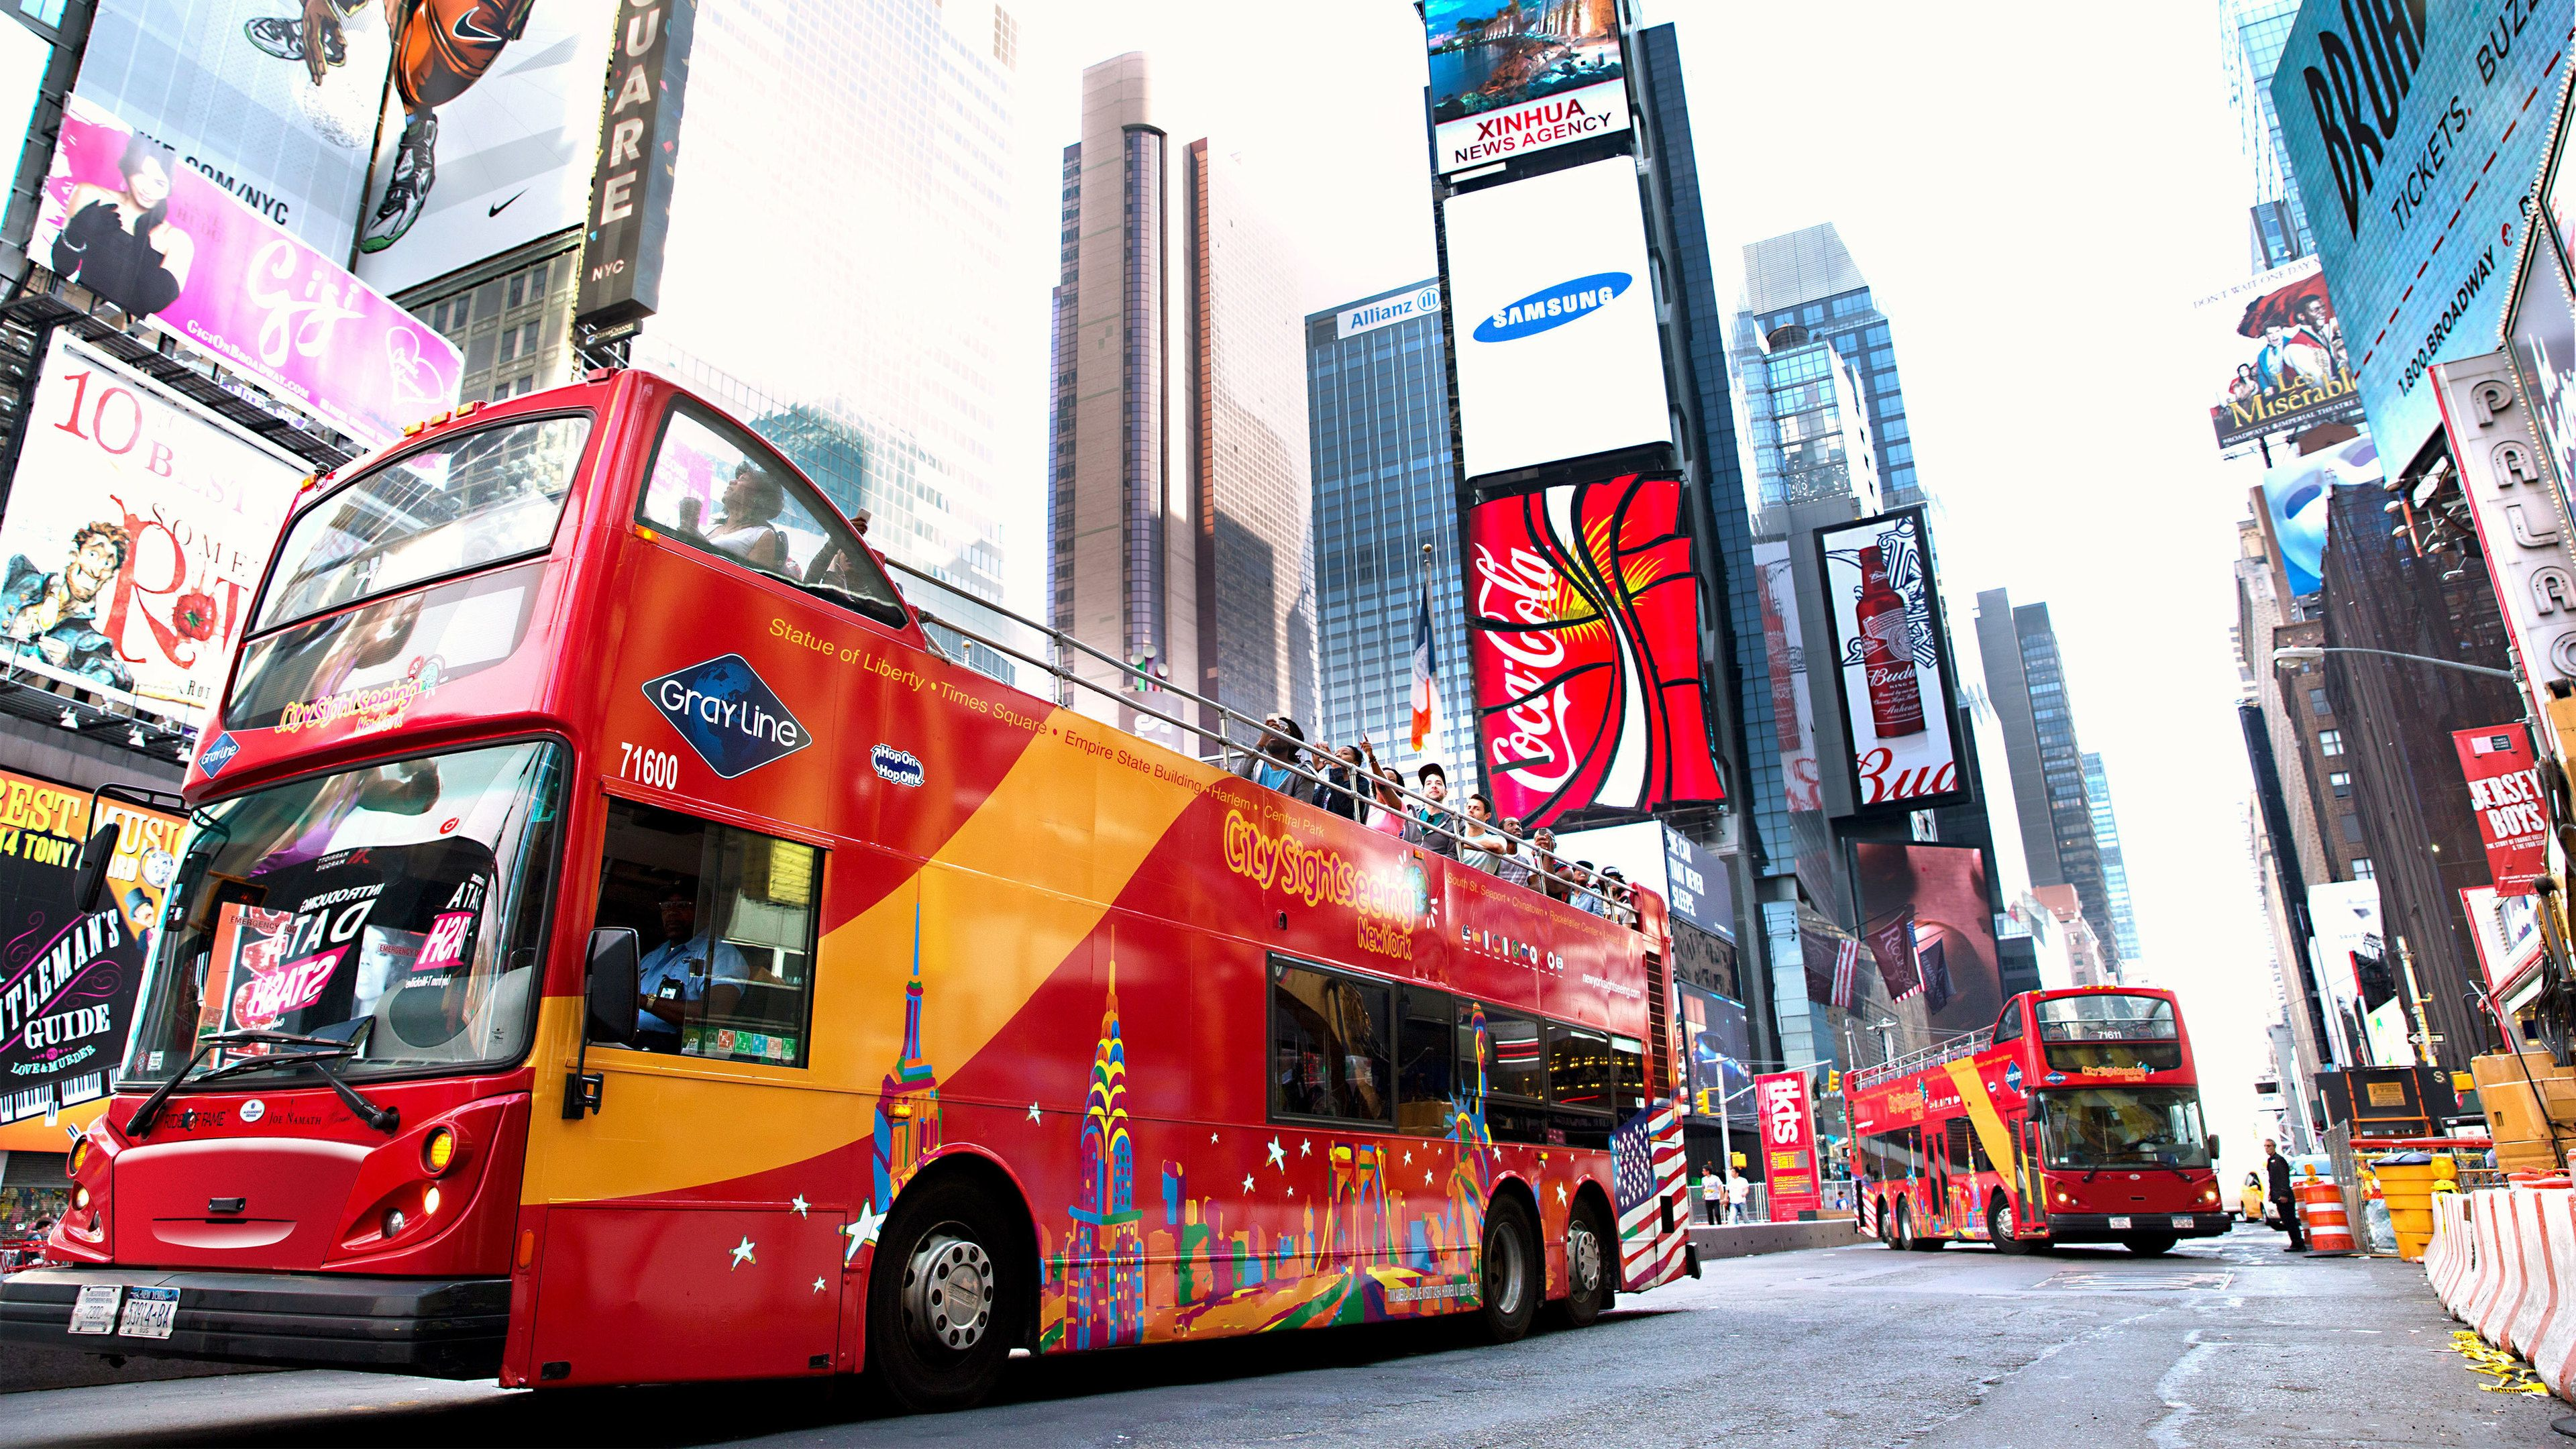 Sightseeing bus in Times Square in New York